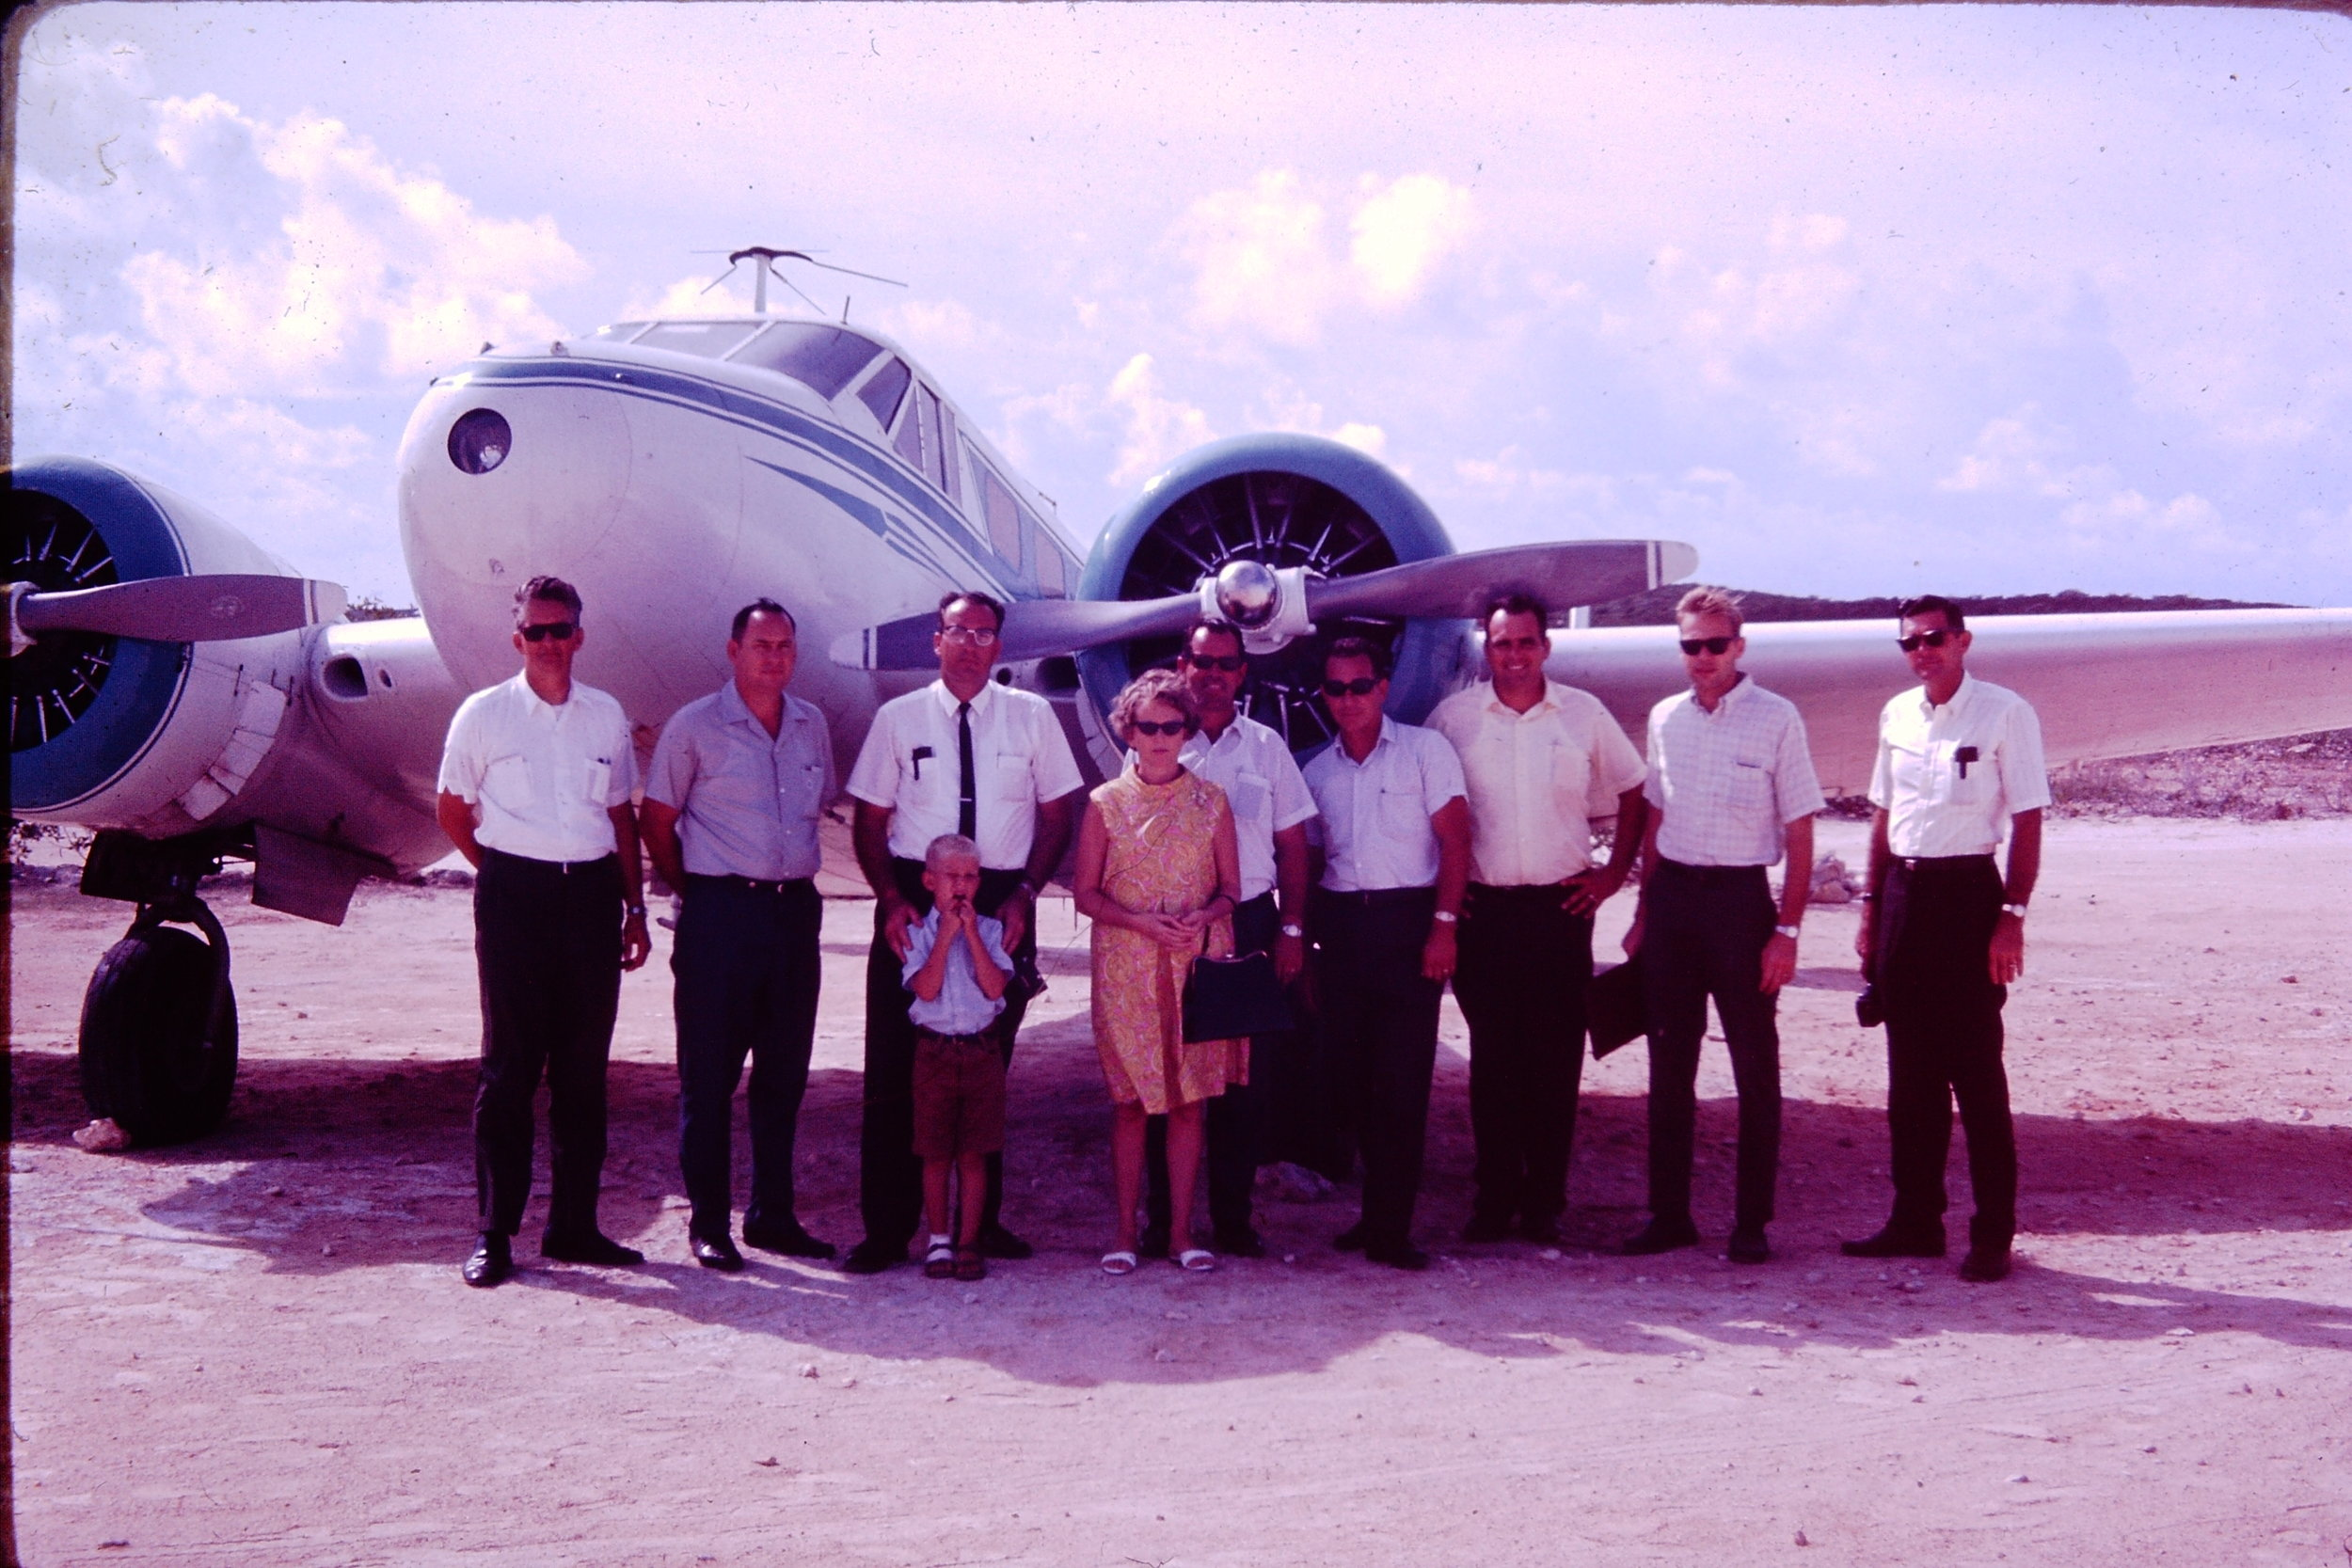 Mission personnel flown in an MFI plane in 1968.